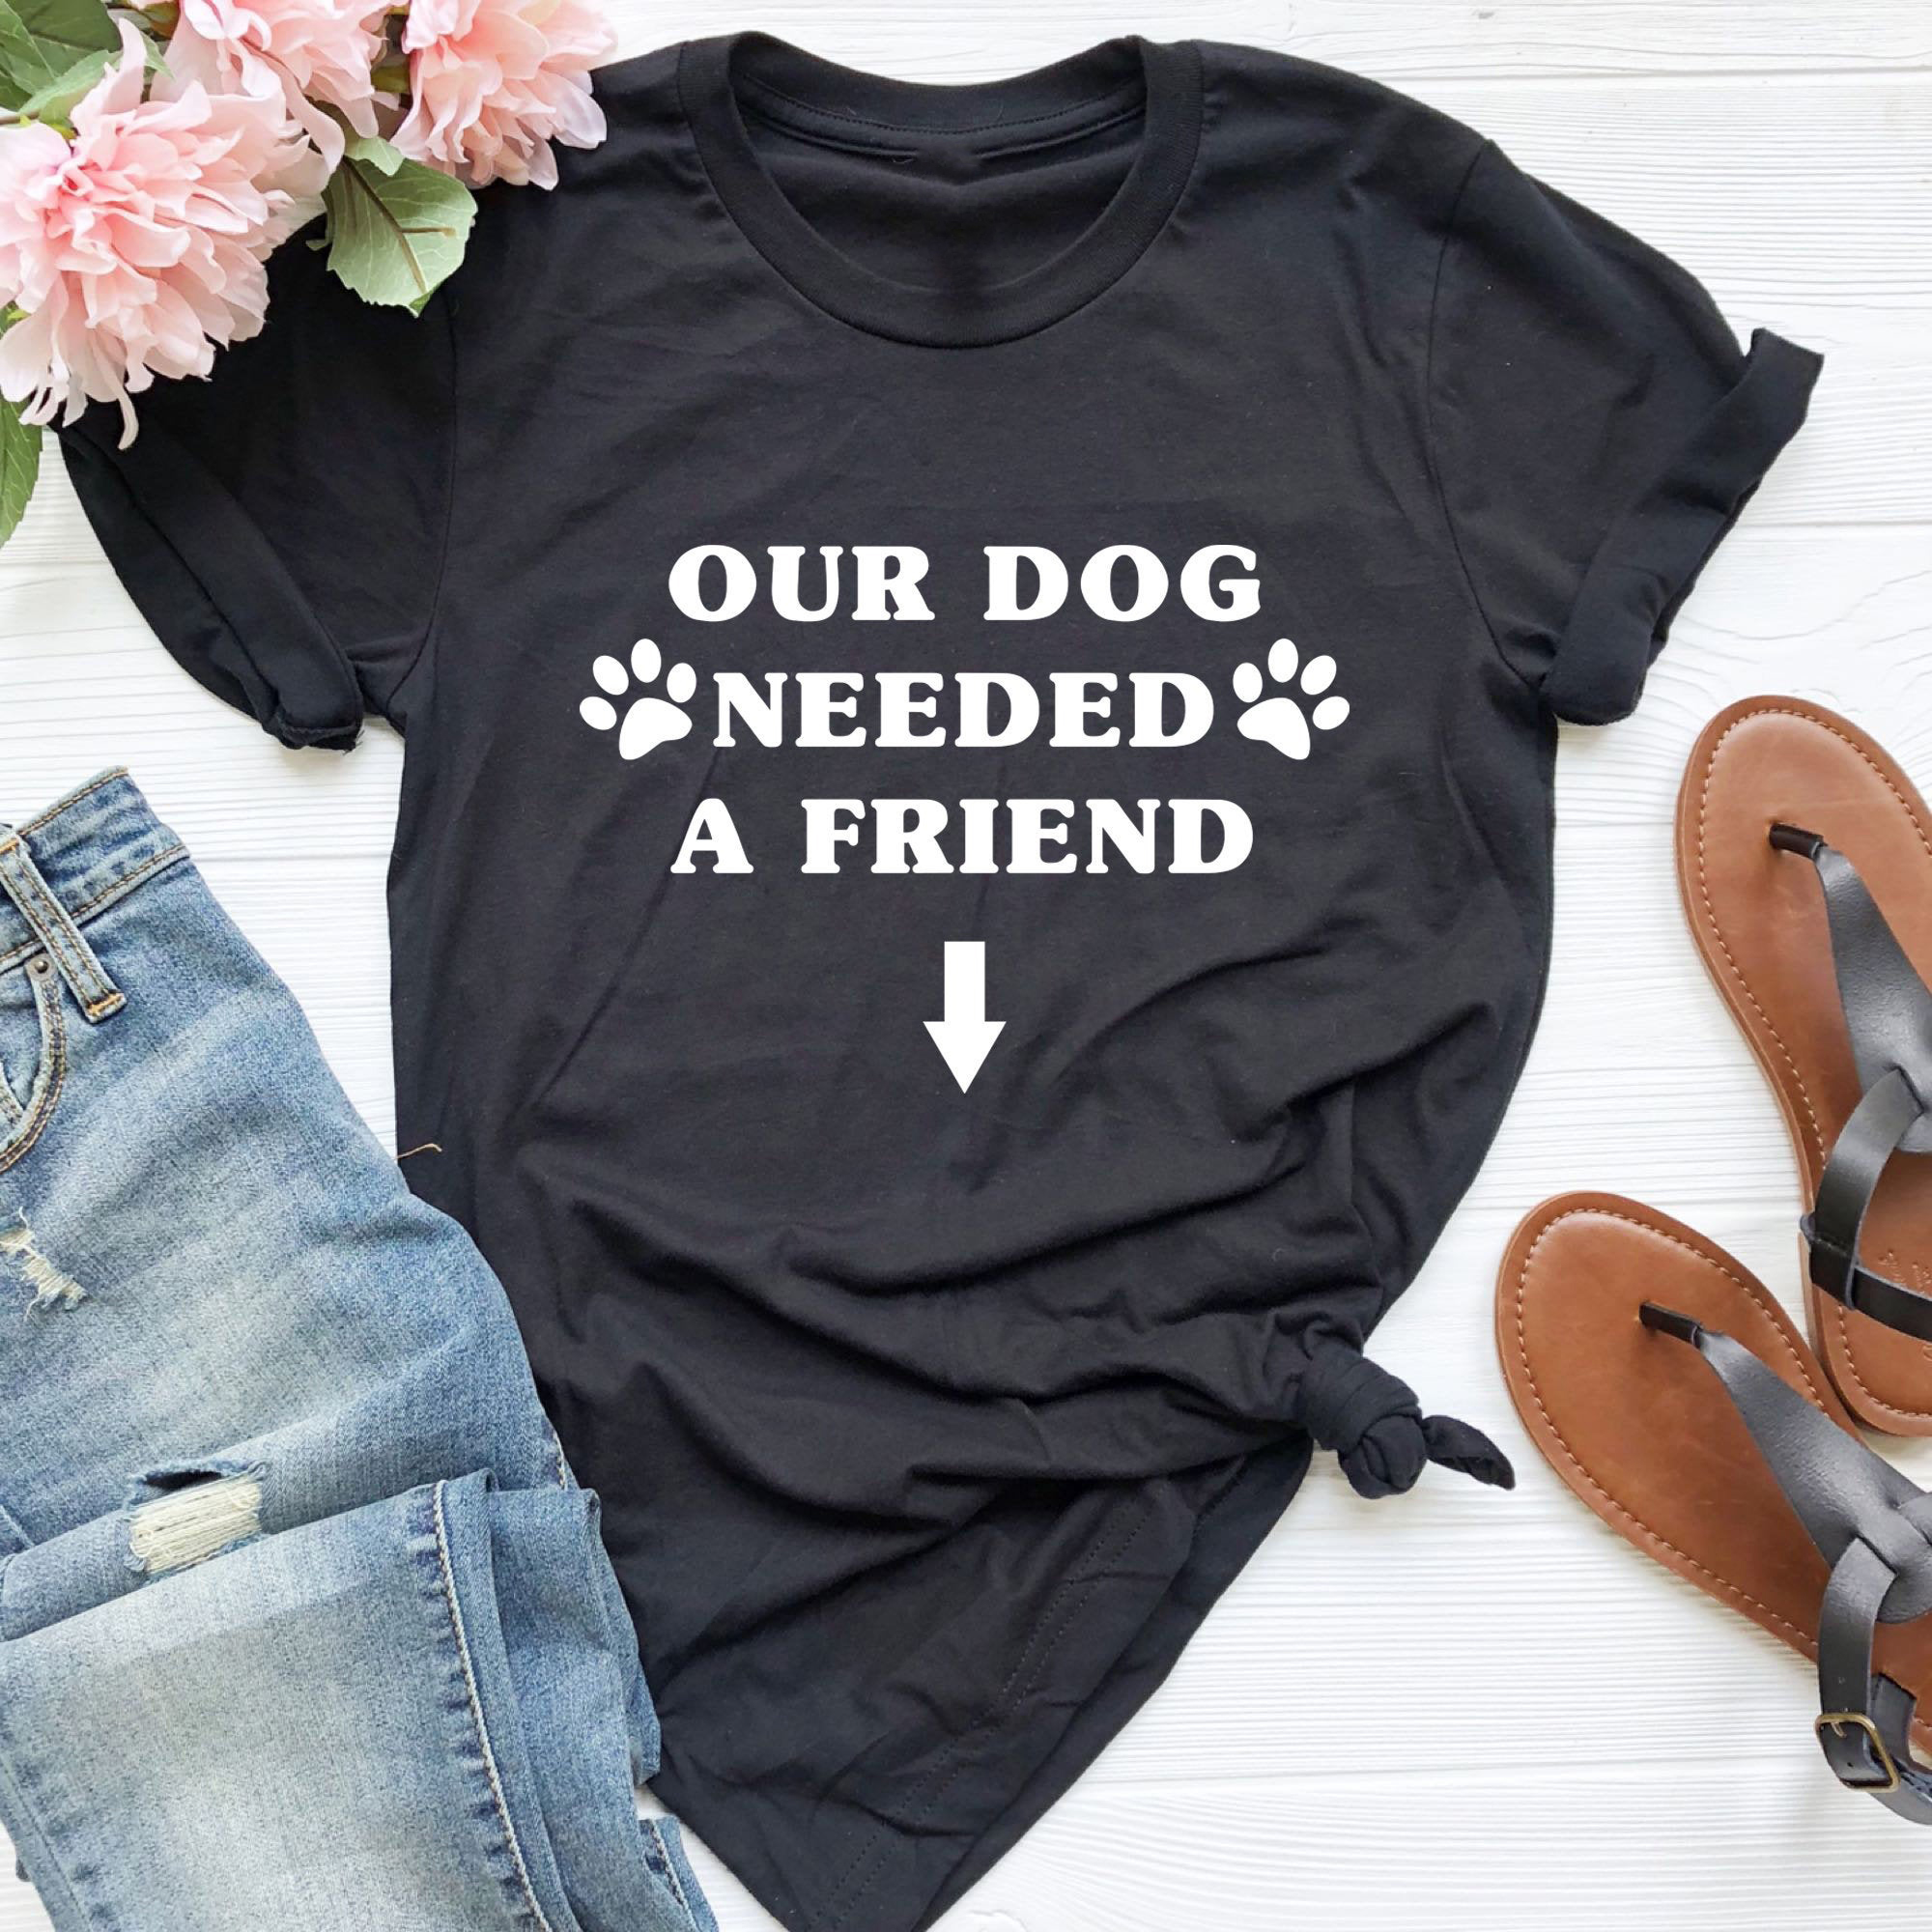 Our Dog Needed A Friend Women Maternity Short Sleeve Tops T-shirt Pregnancy Funny Cloth for Pregnant Maternity Hot Sale T-shirt